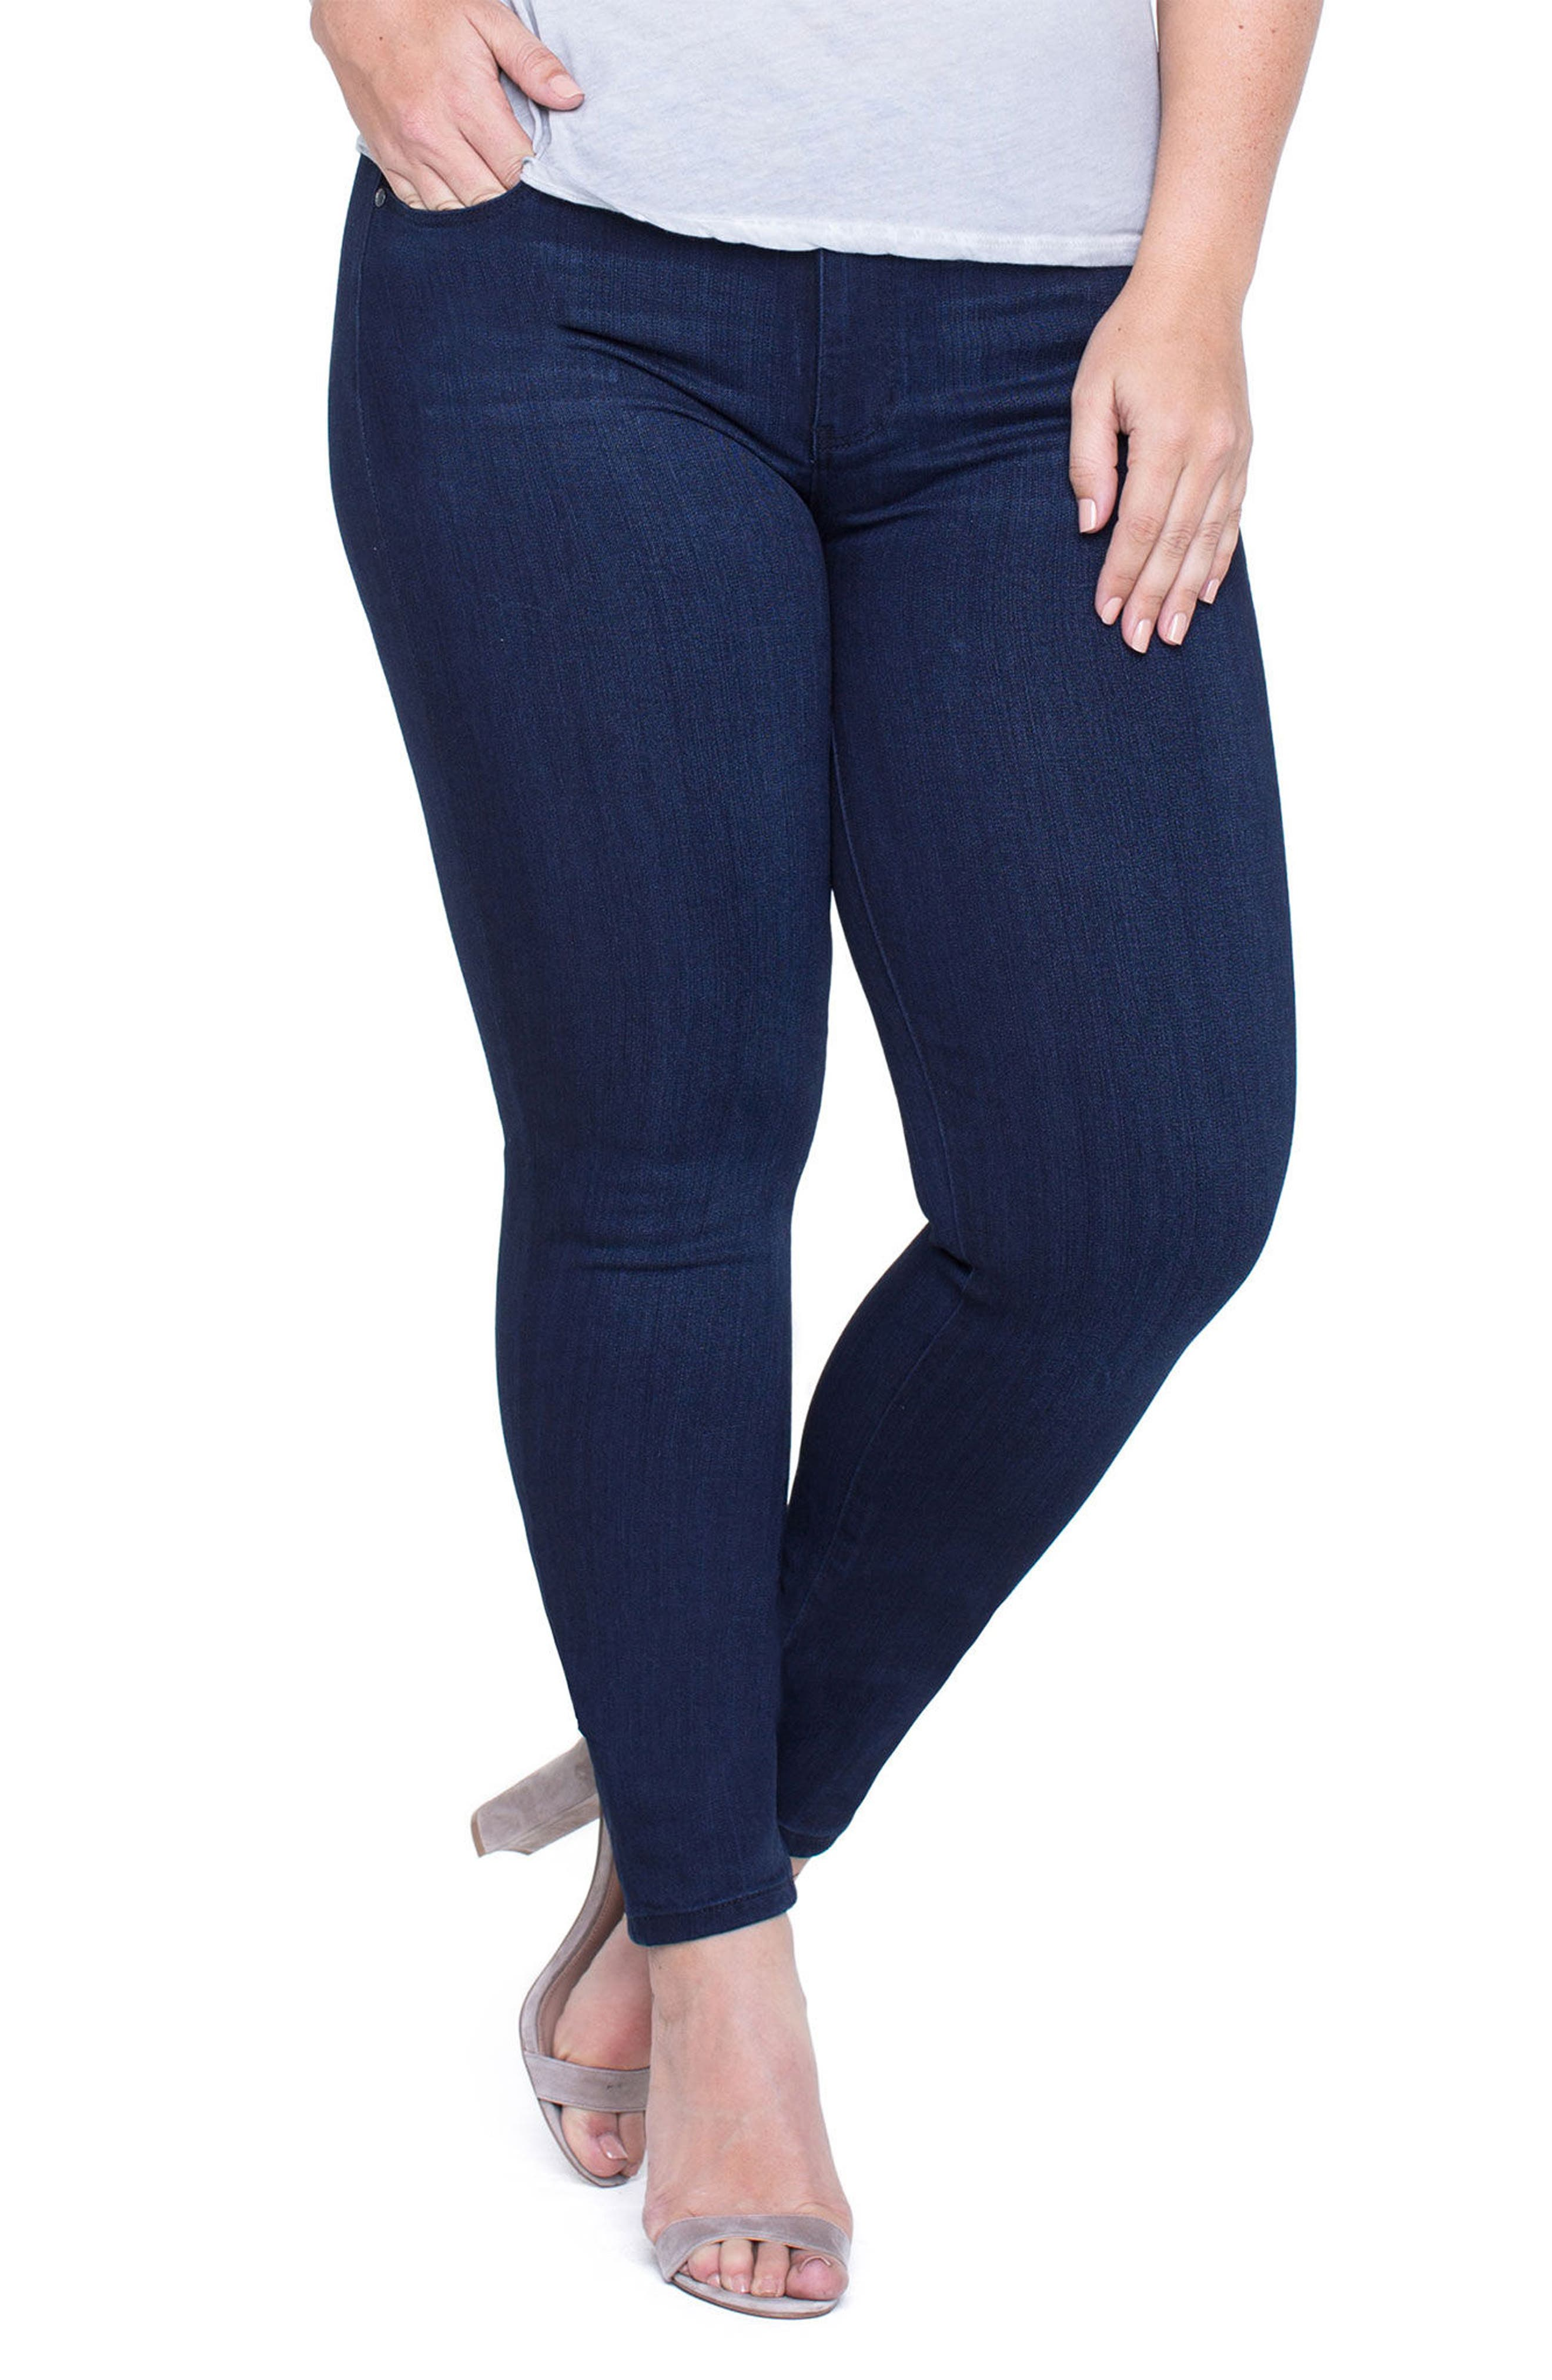 Abby Stretch Skinny Jeans,                         Main,                         color, Stone Wash